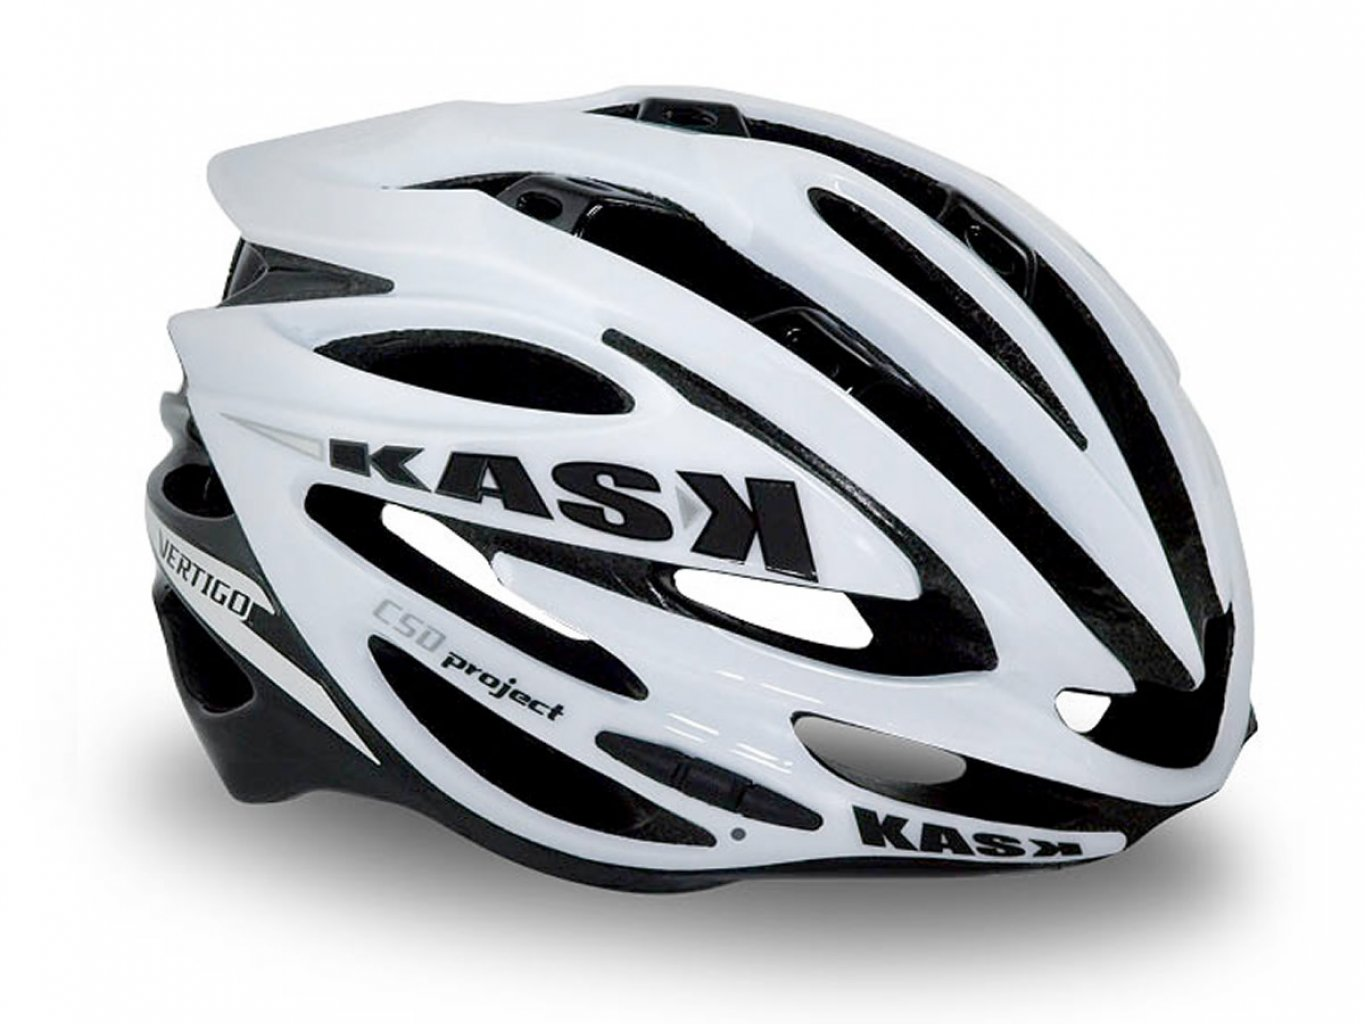 Kask Vertigo White/Black